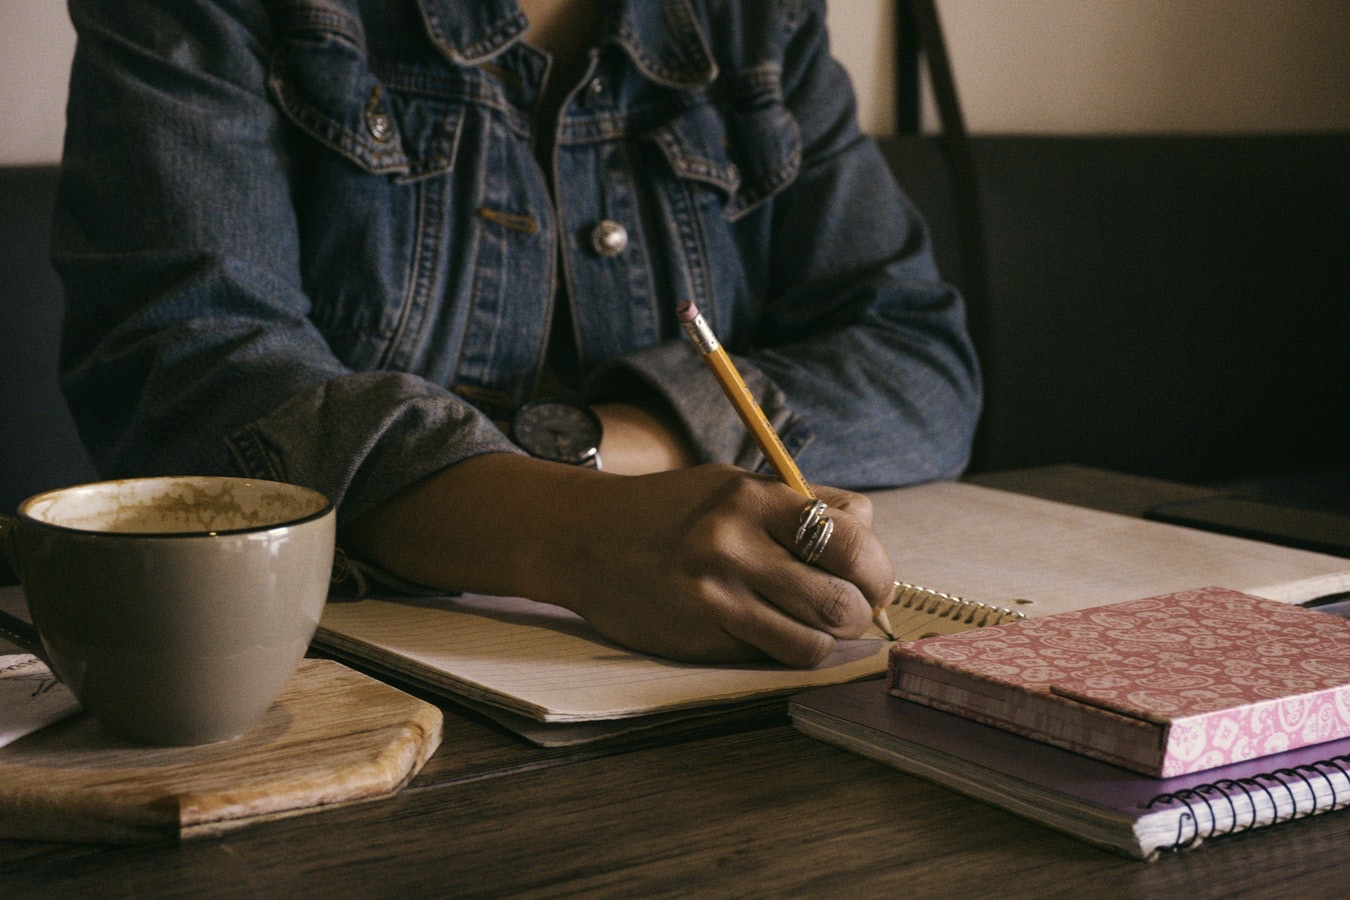 Image of person writing in a notebook on a table, in article about authors building a fan base